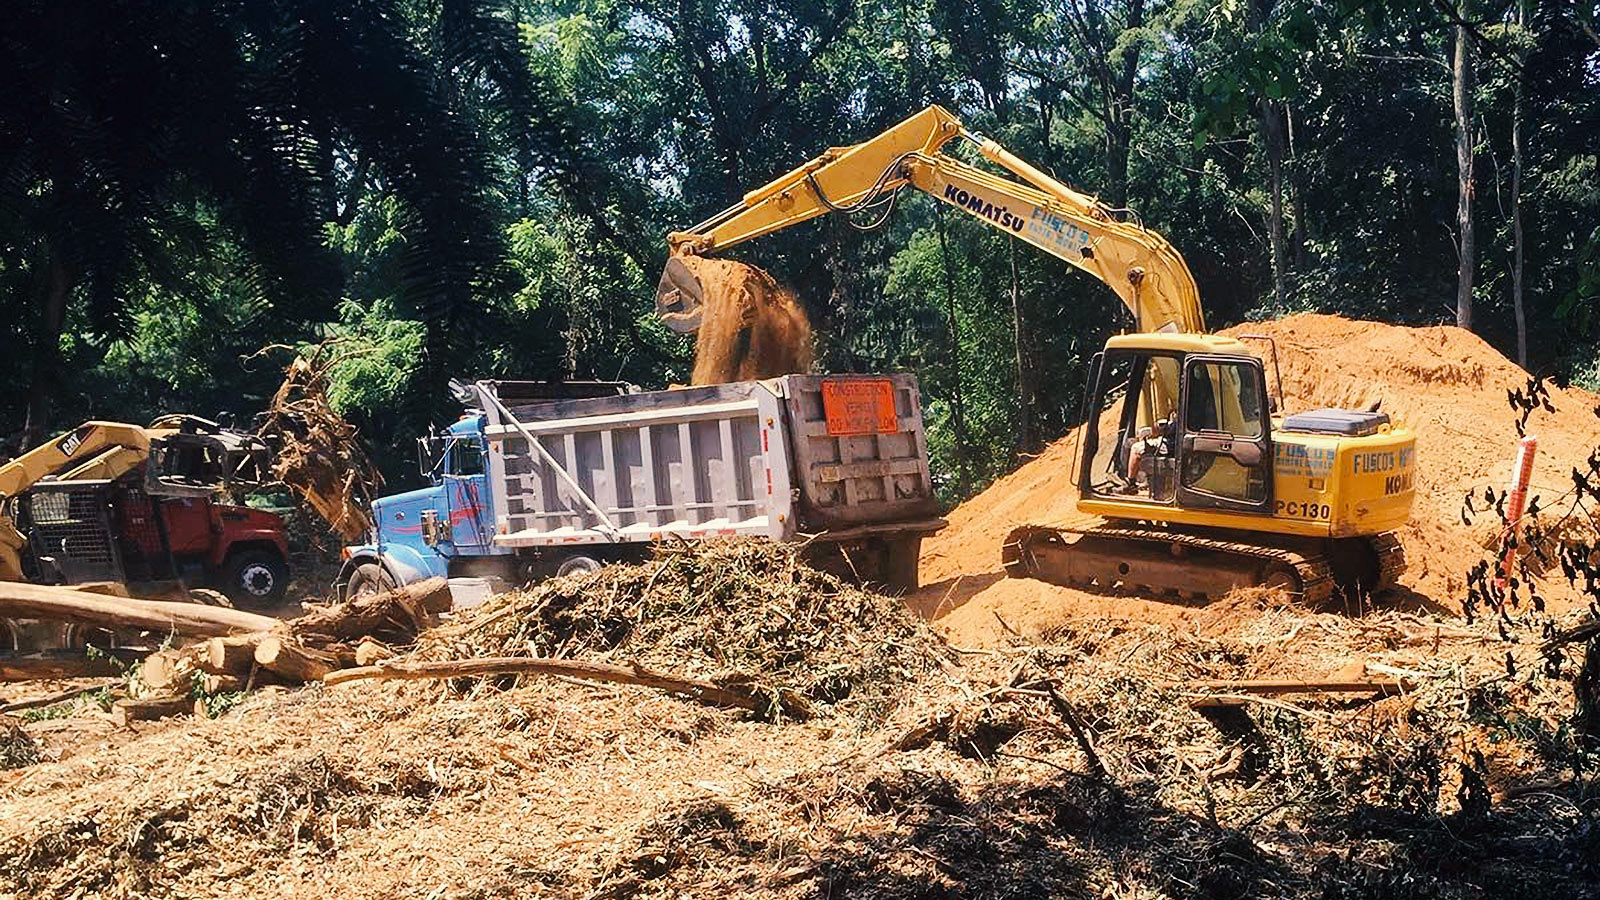 Demolition and Dumpster Service in New Jersey